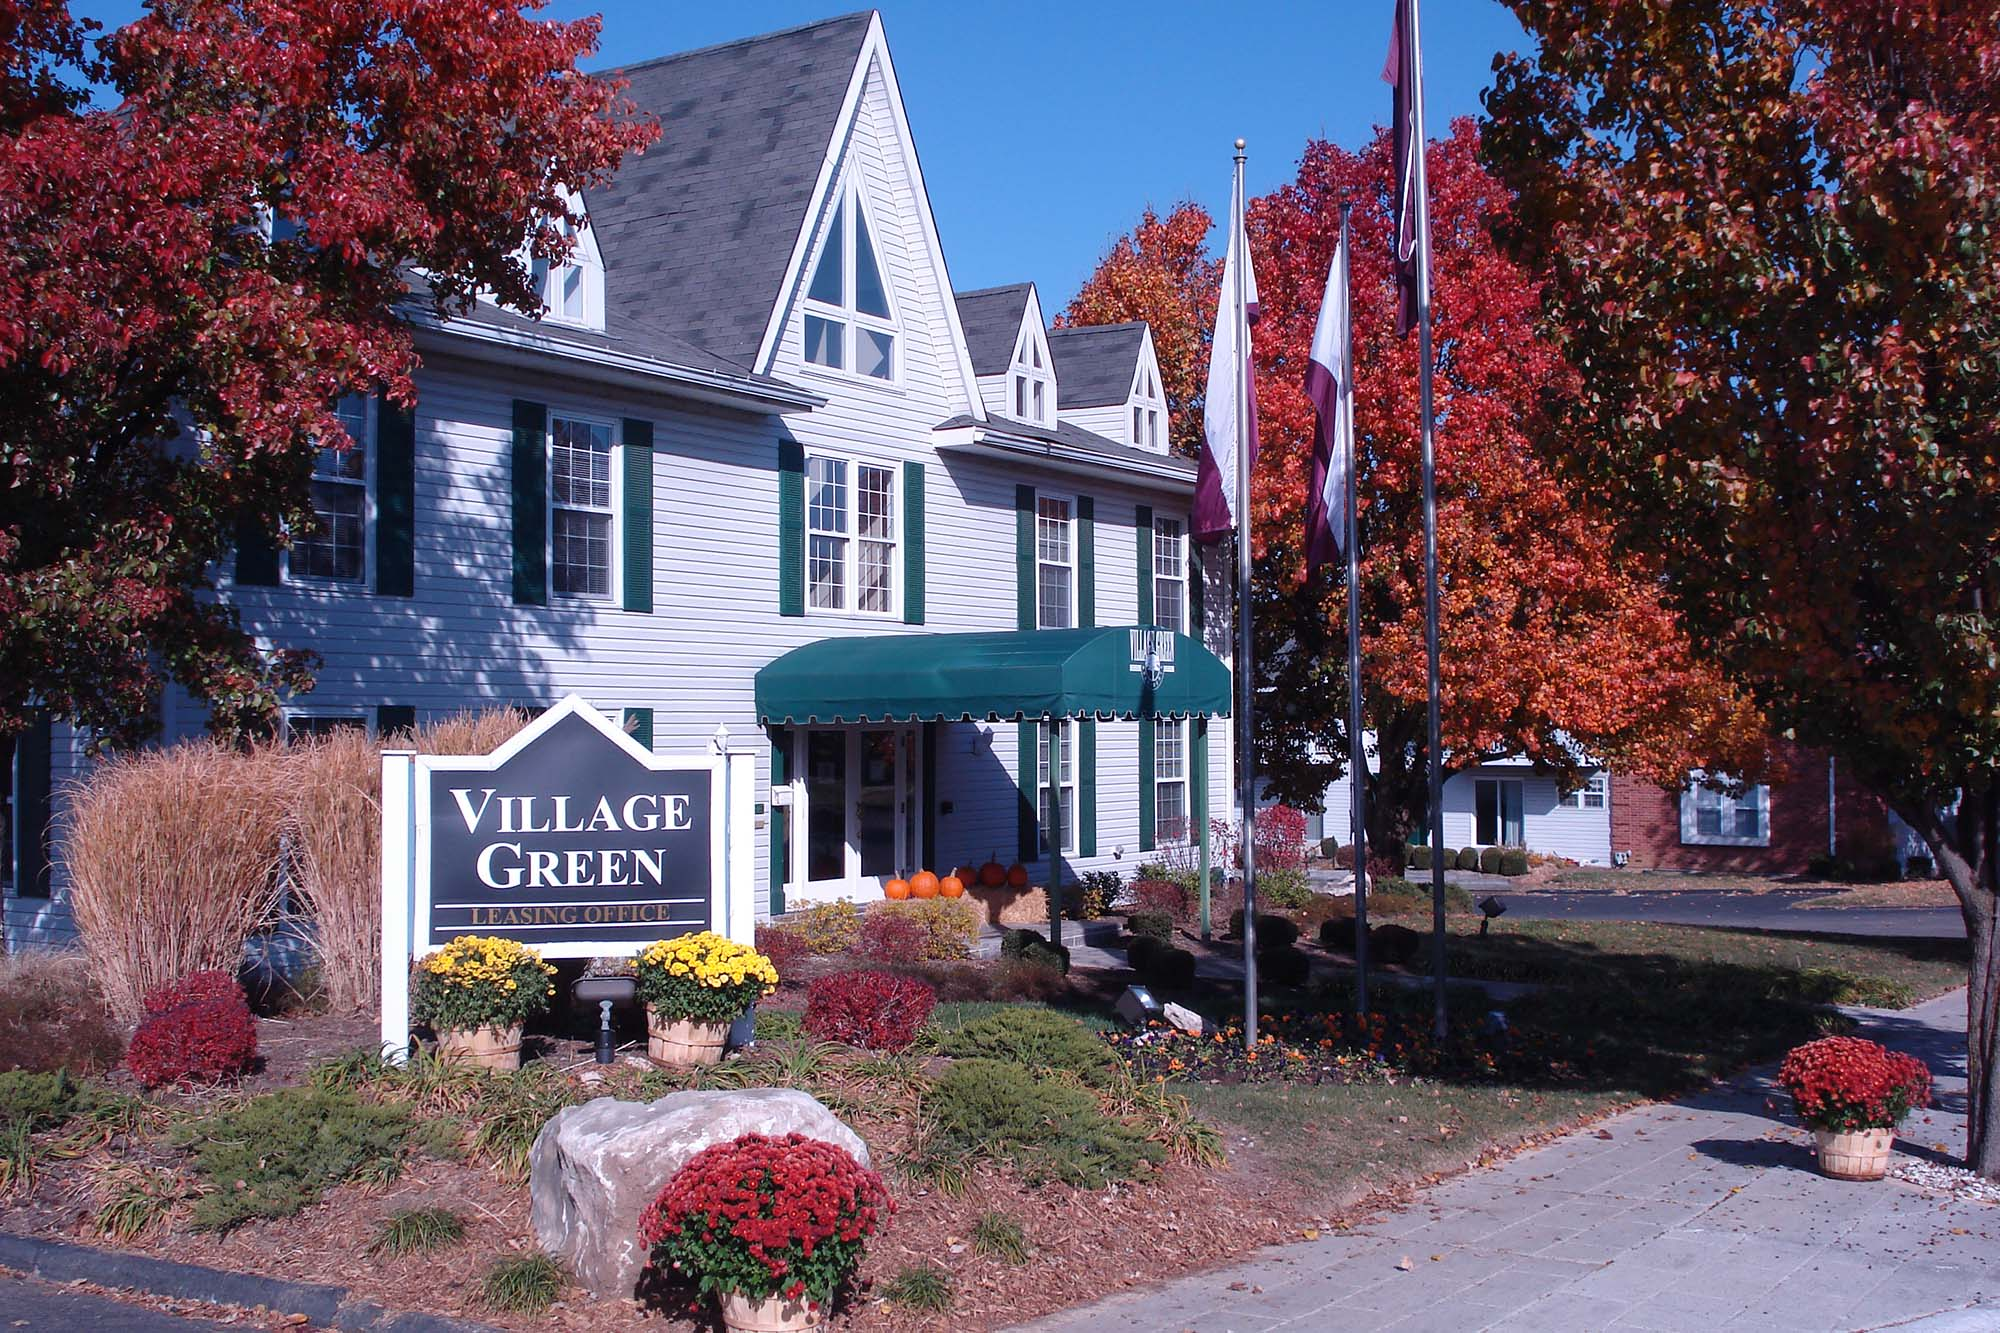 Village Green Apartments in the Chesterfield MO